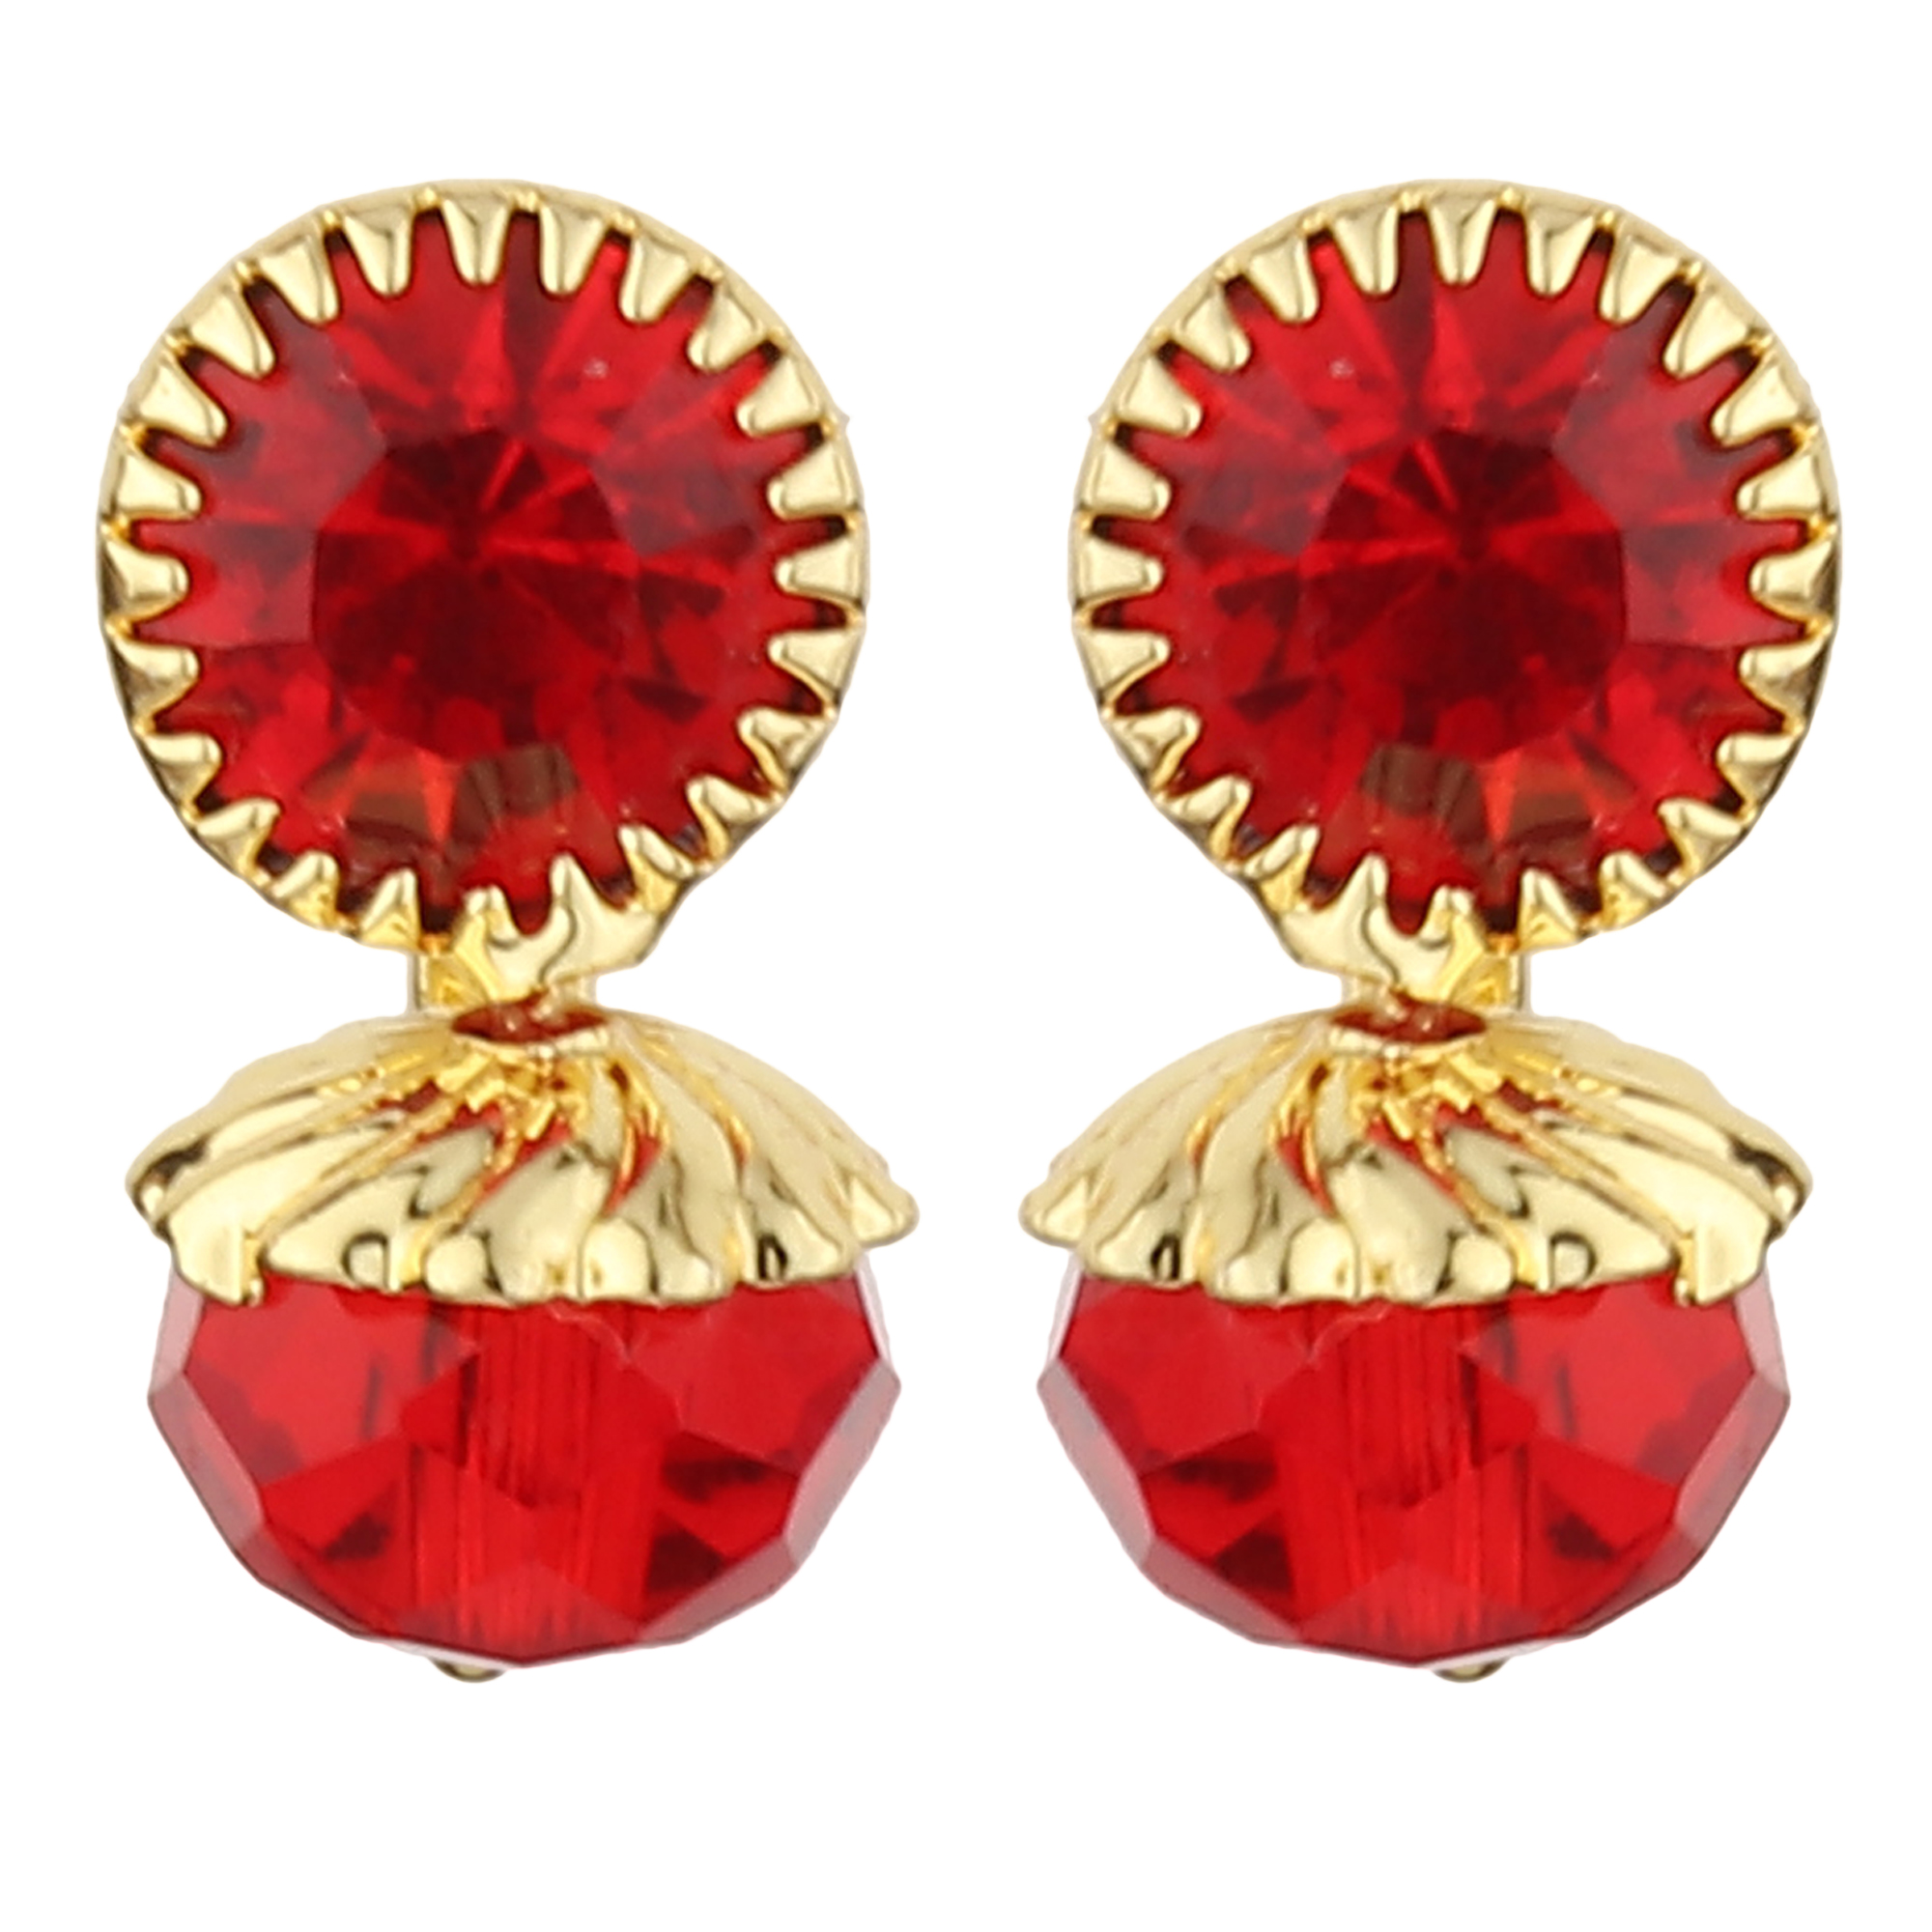 FirstBlush | FirstBlush Clip On Earrings for Non Piearced Ears for Women & Girls; Plating: Gold; Color: Red; Size: 15 X 10mm; Wt.: 3gm. (MIEC104M135)